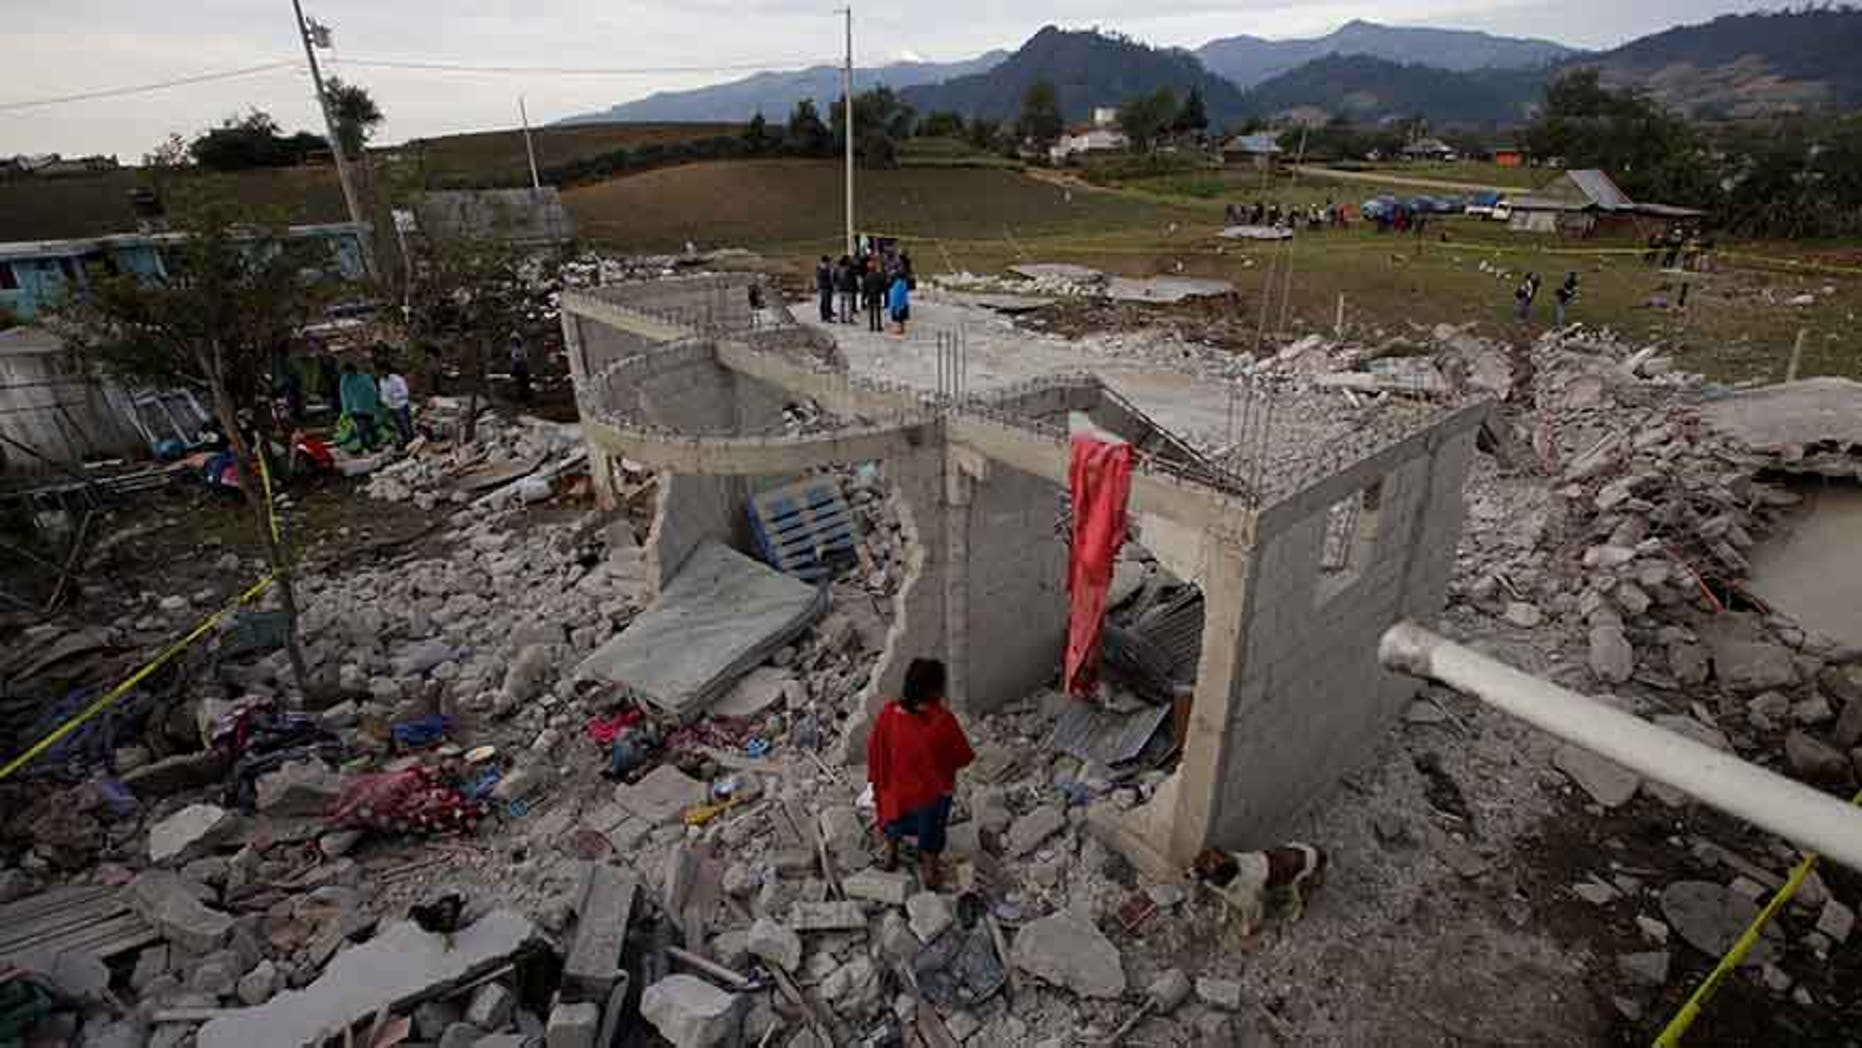 Scene after fireworks stored in a house exploded in San Isidro, Chilchotla, Mexico, May 9, 2017